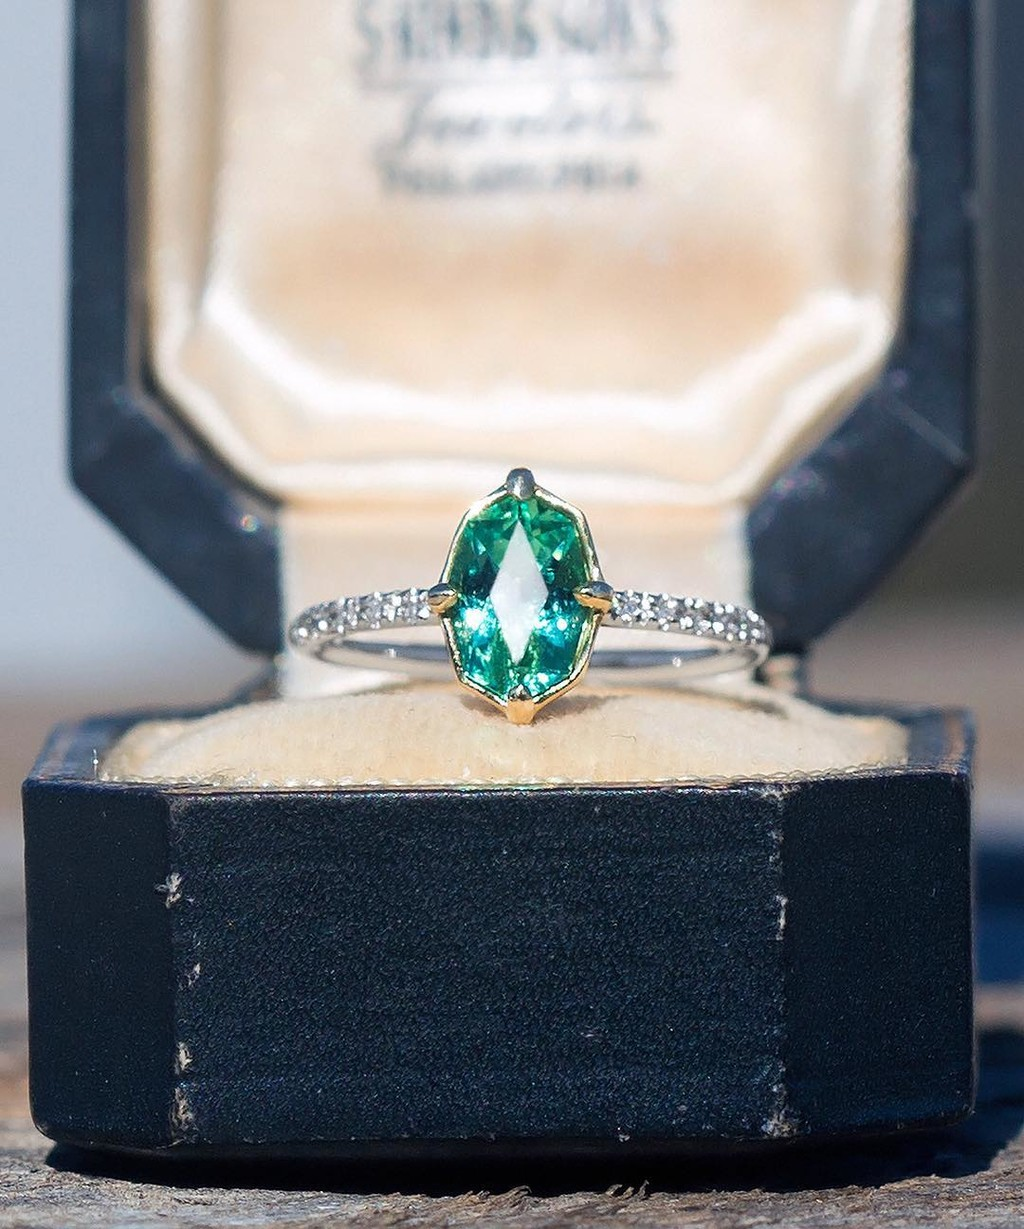 🐉💚🥦This glorious emerald caught my eye immediately and upon gazing at its elongated and unique proportions I simply needed